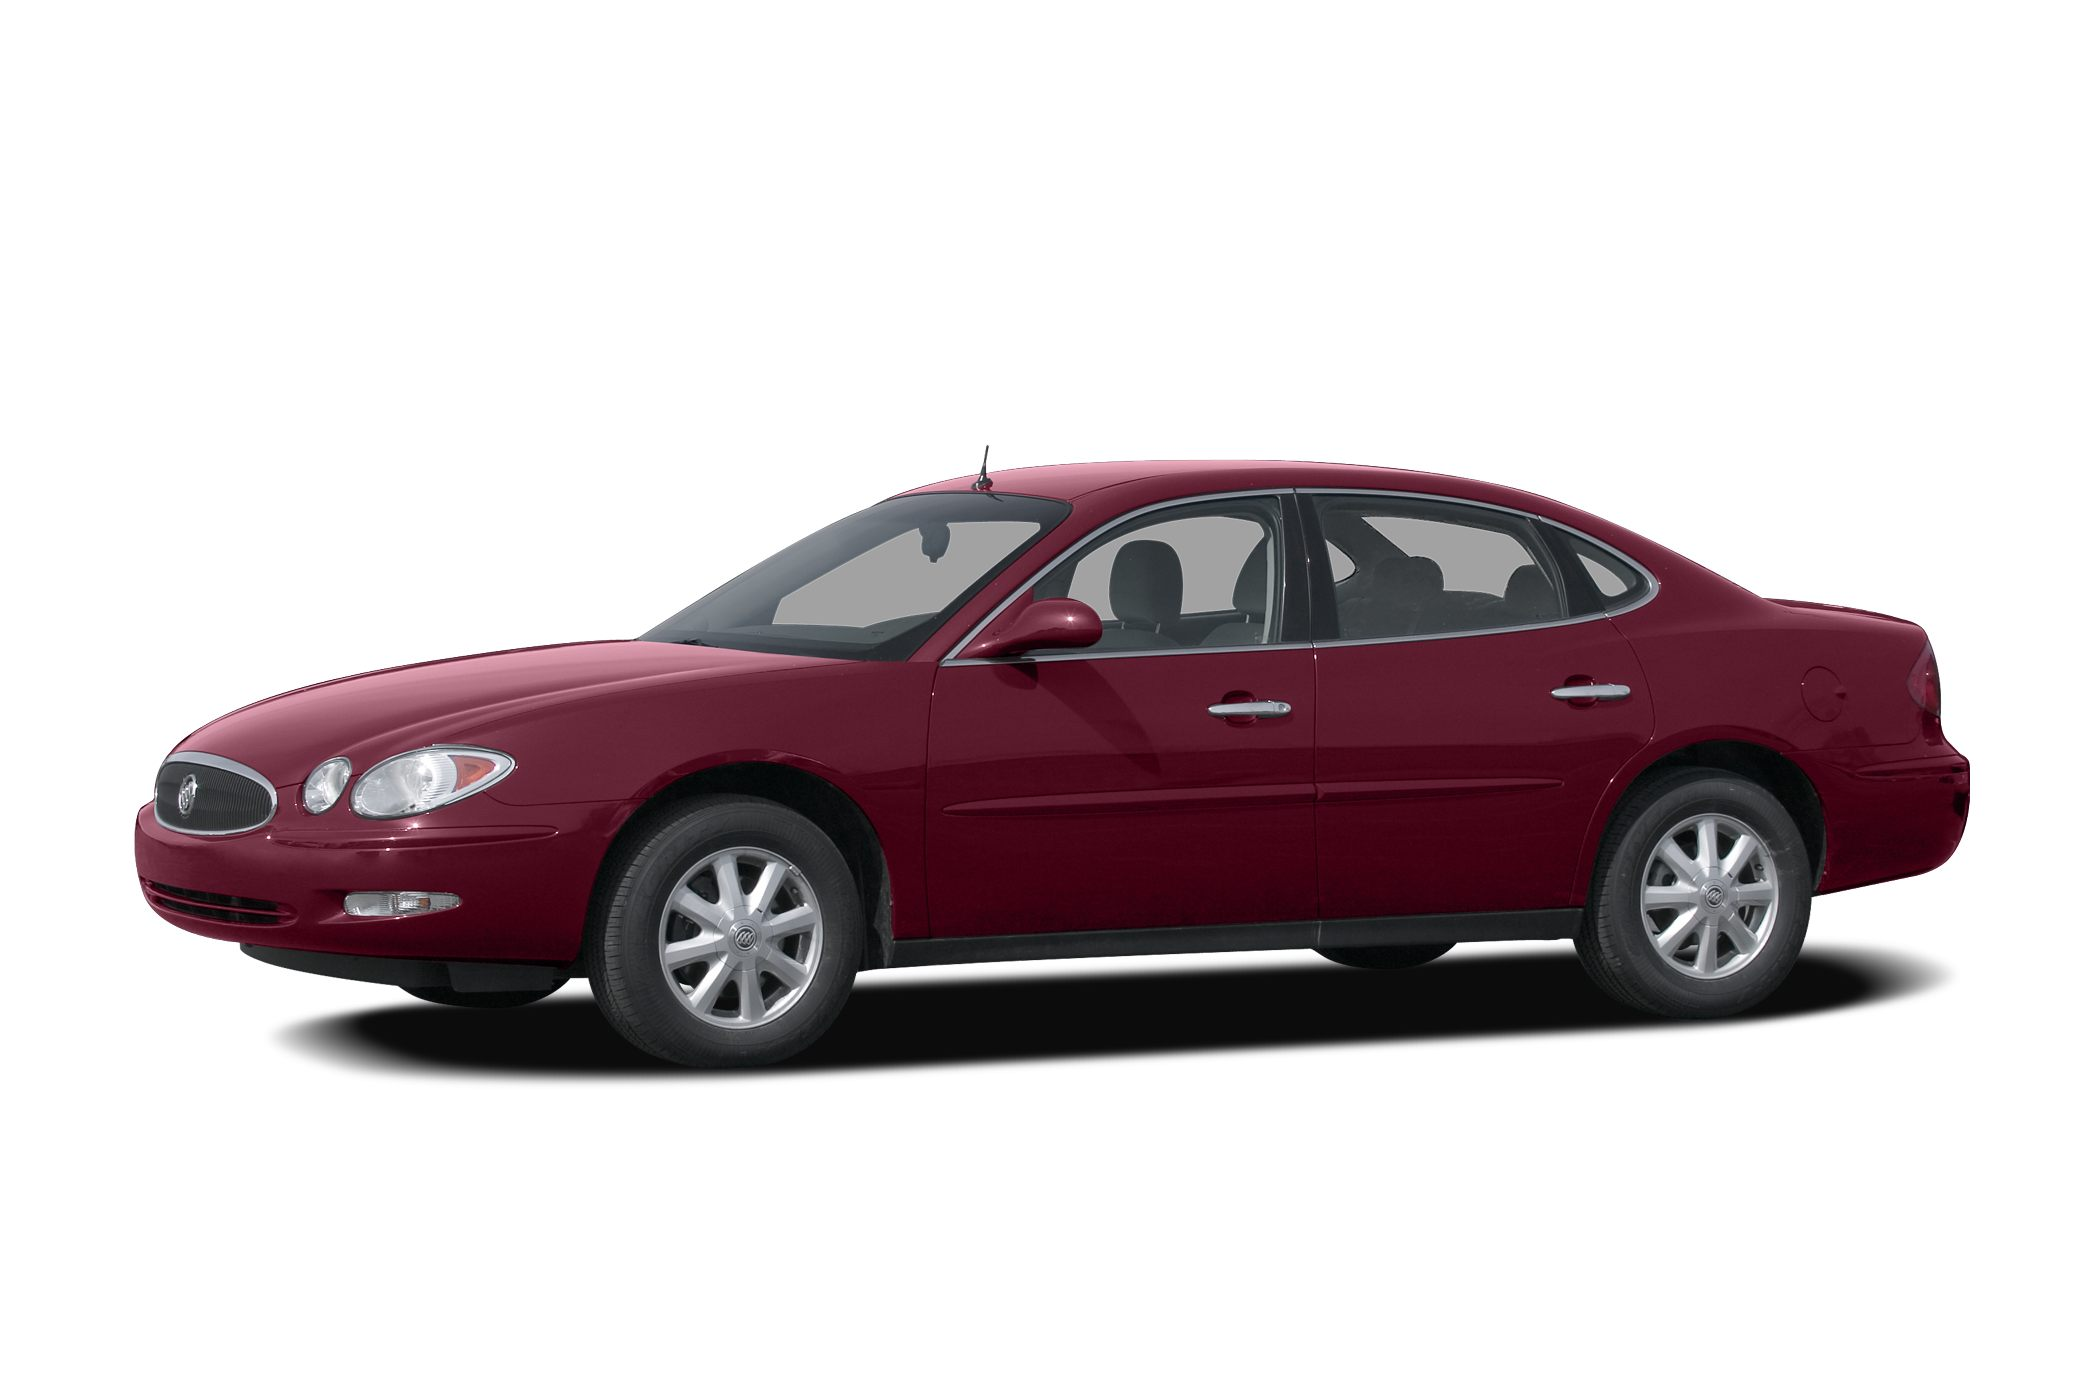 2008 Buick LaCrosse CX FLORIDA OWNED BUICK LACROSSE CXONE OWNERCLEAN CAR FAXCome see this 20